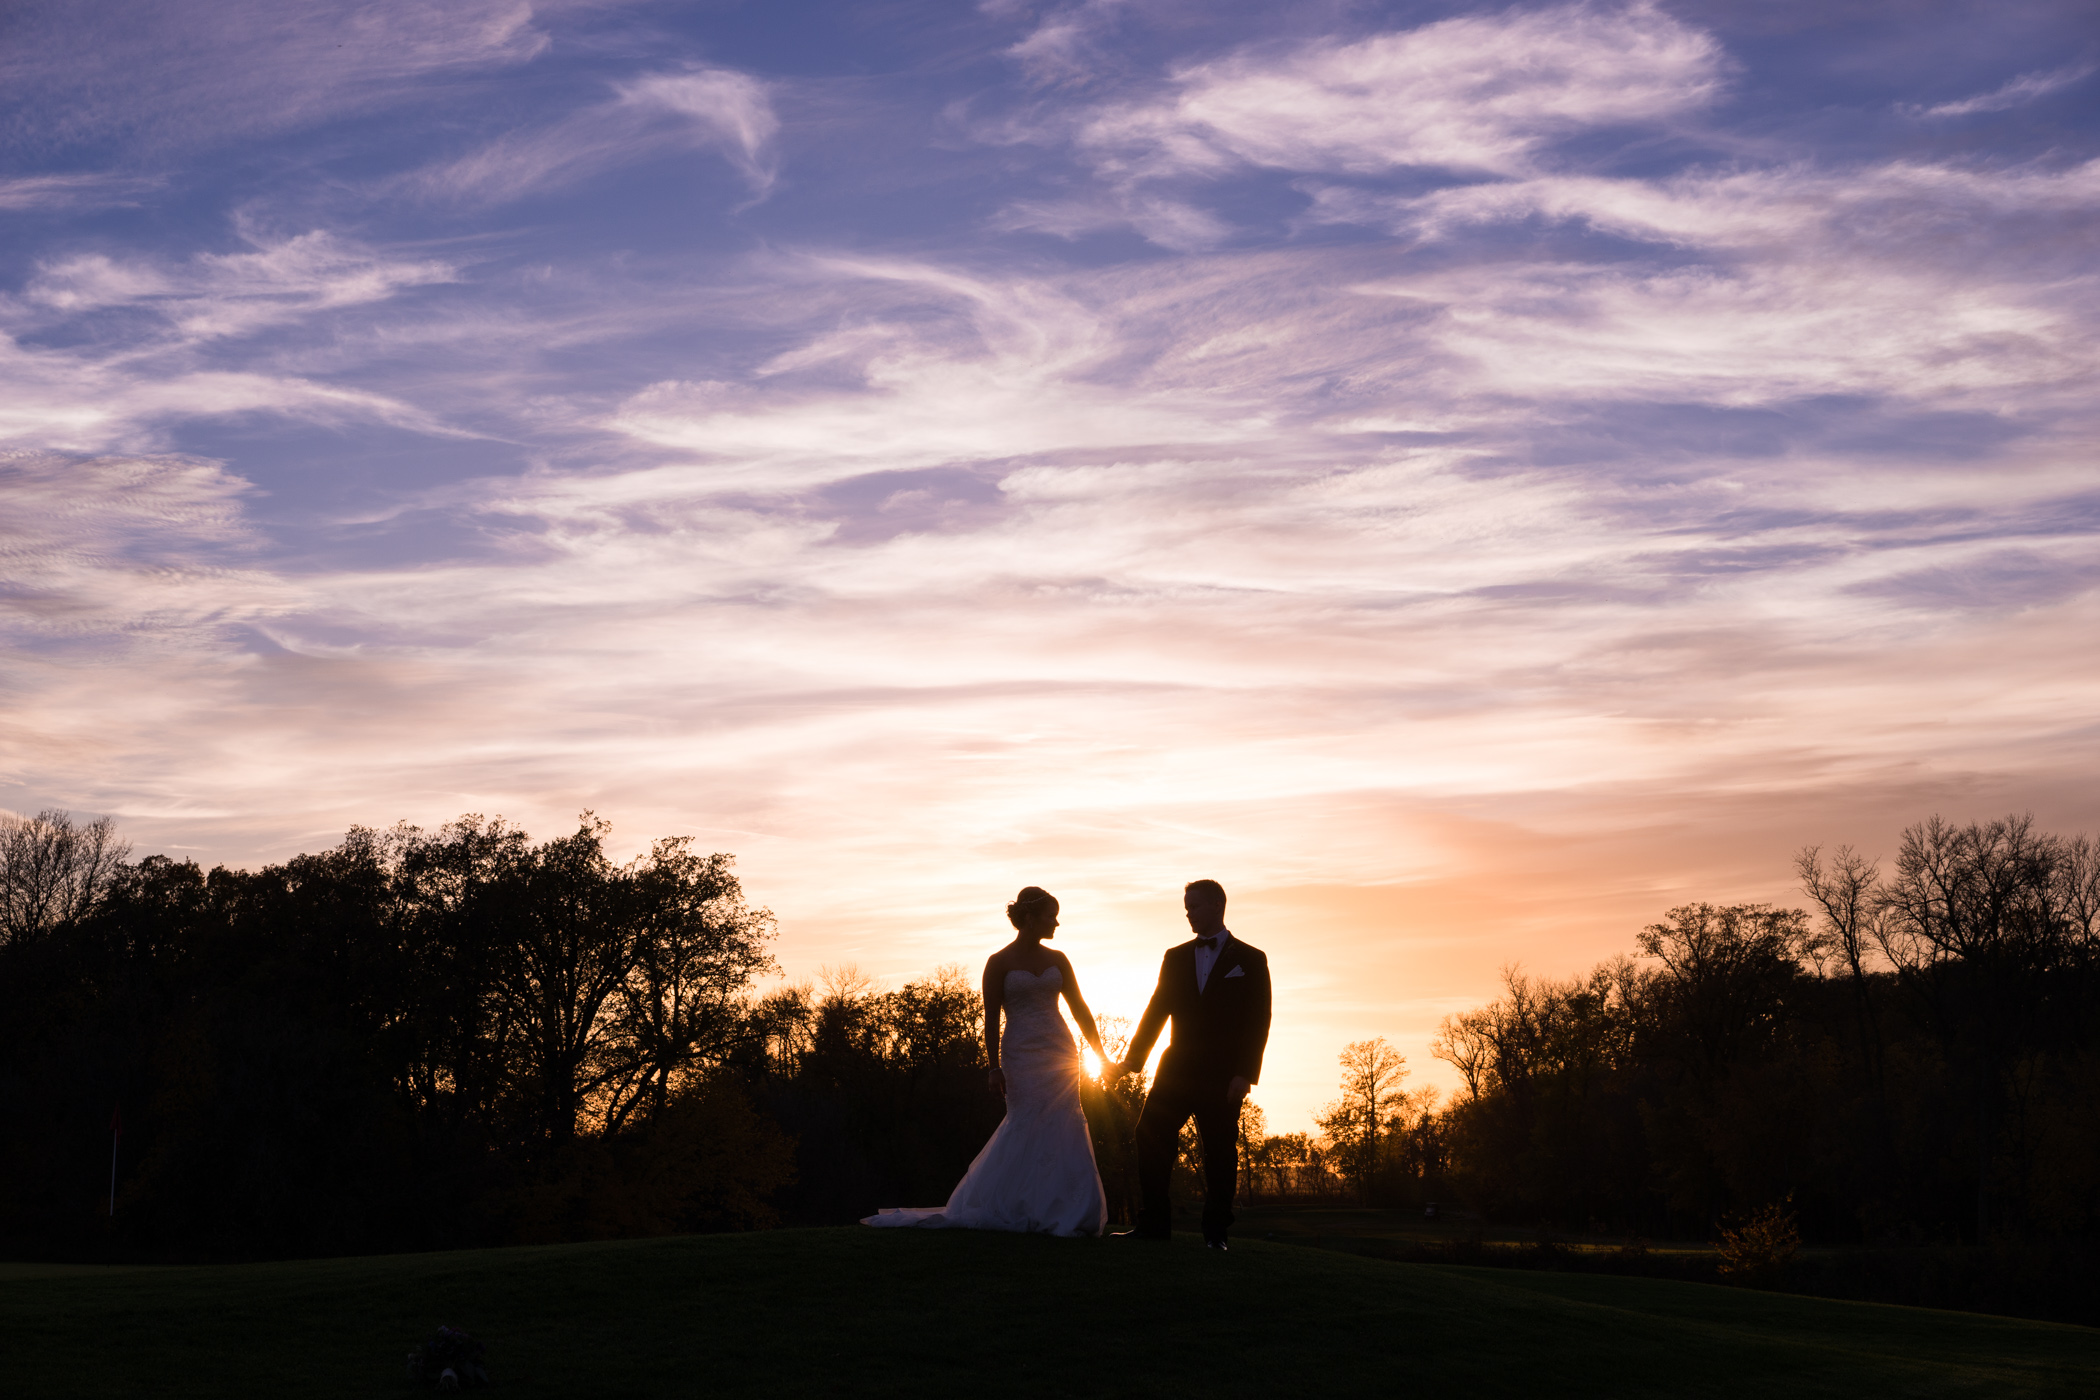 ct-bridges golf course wedding-1389.jpg